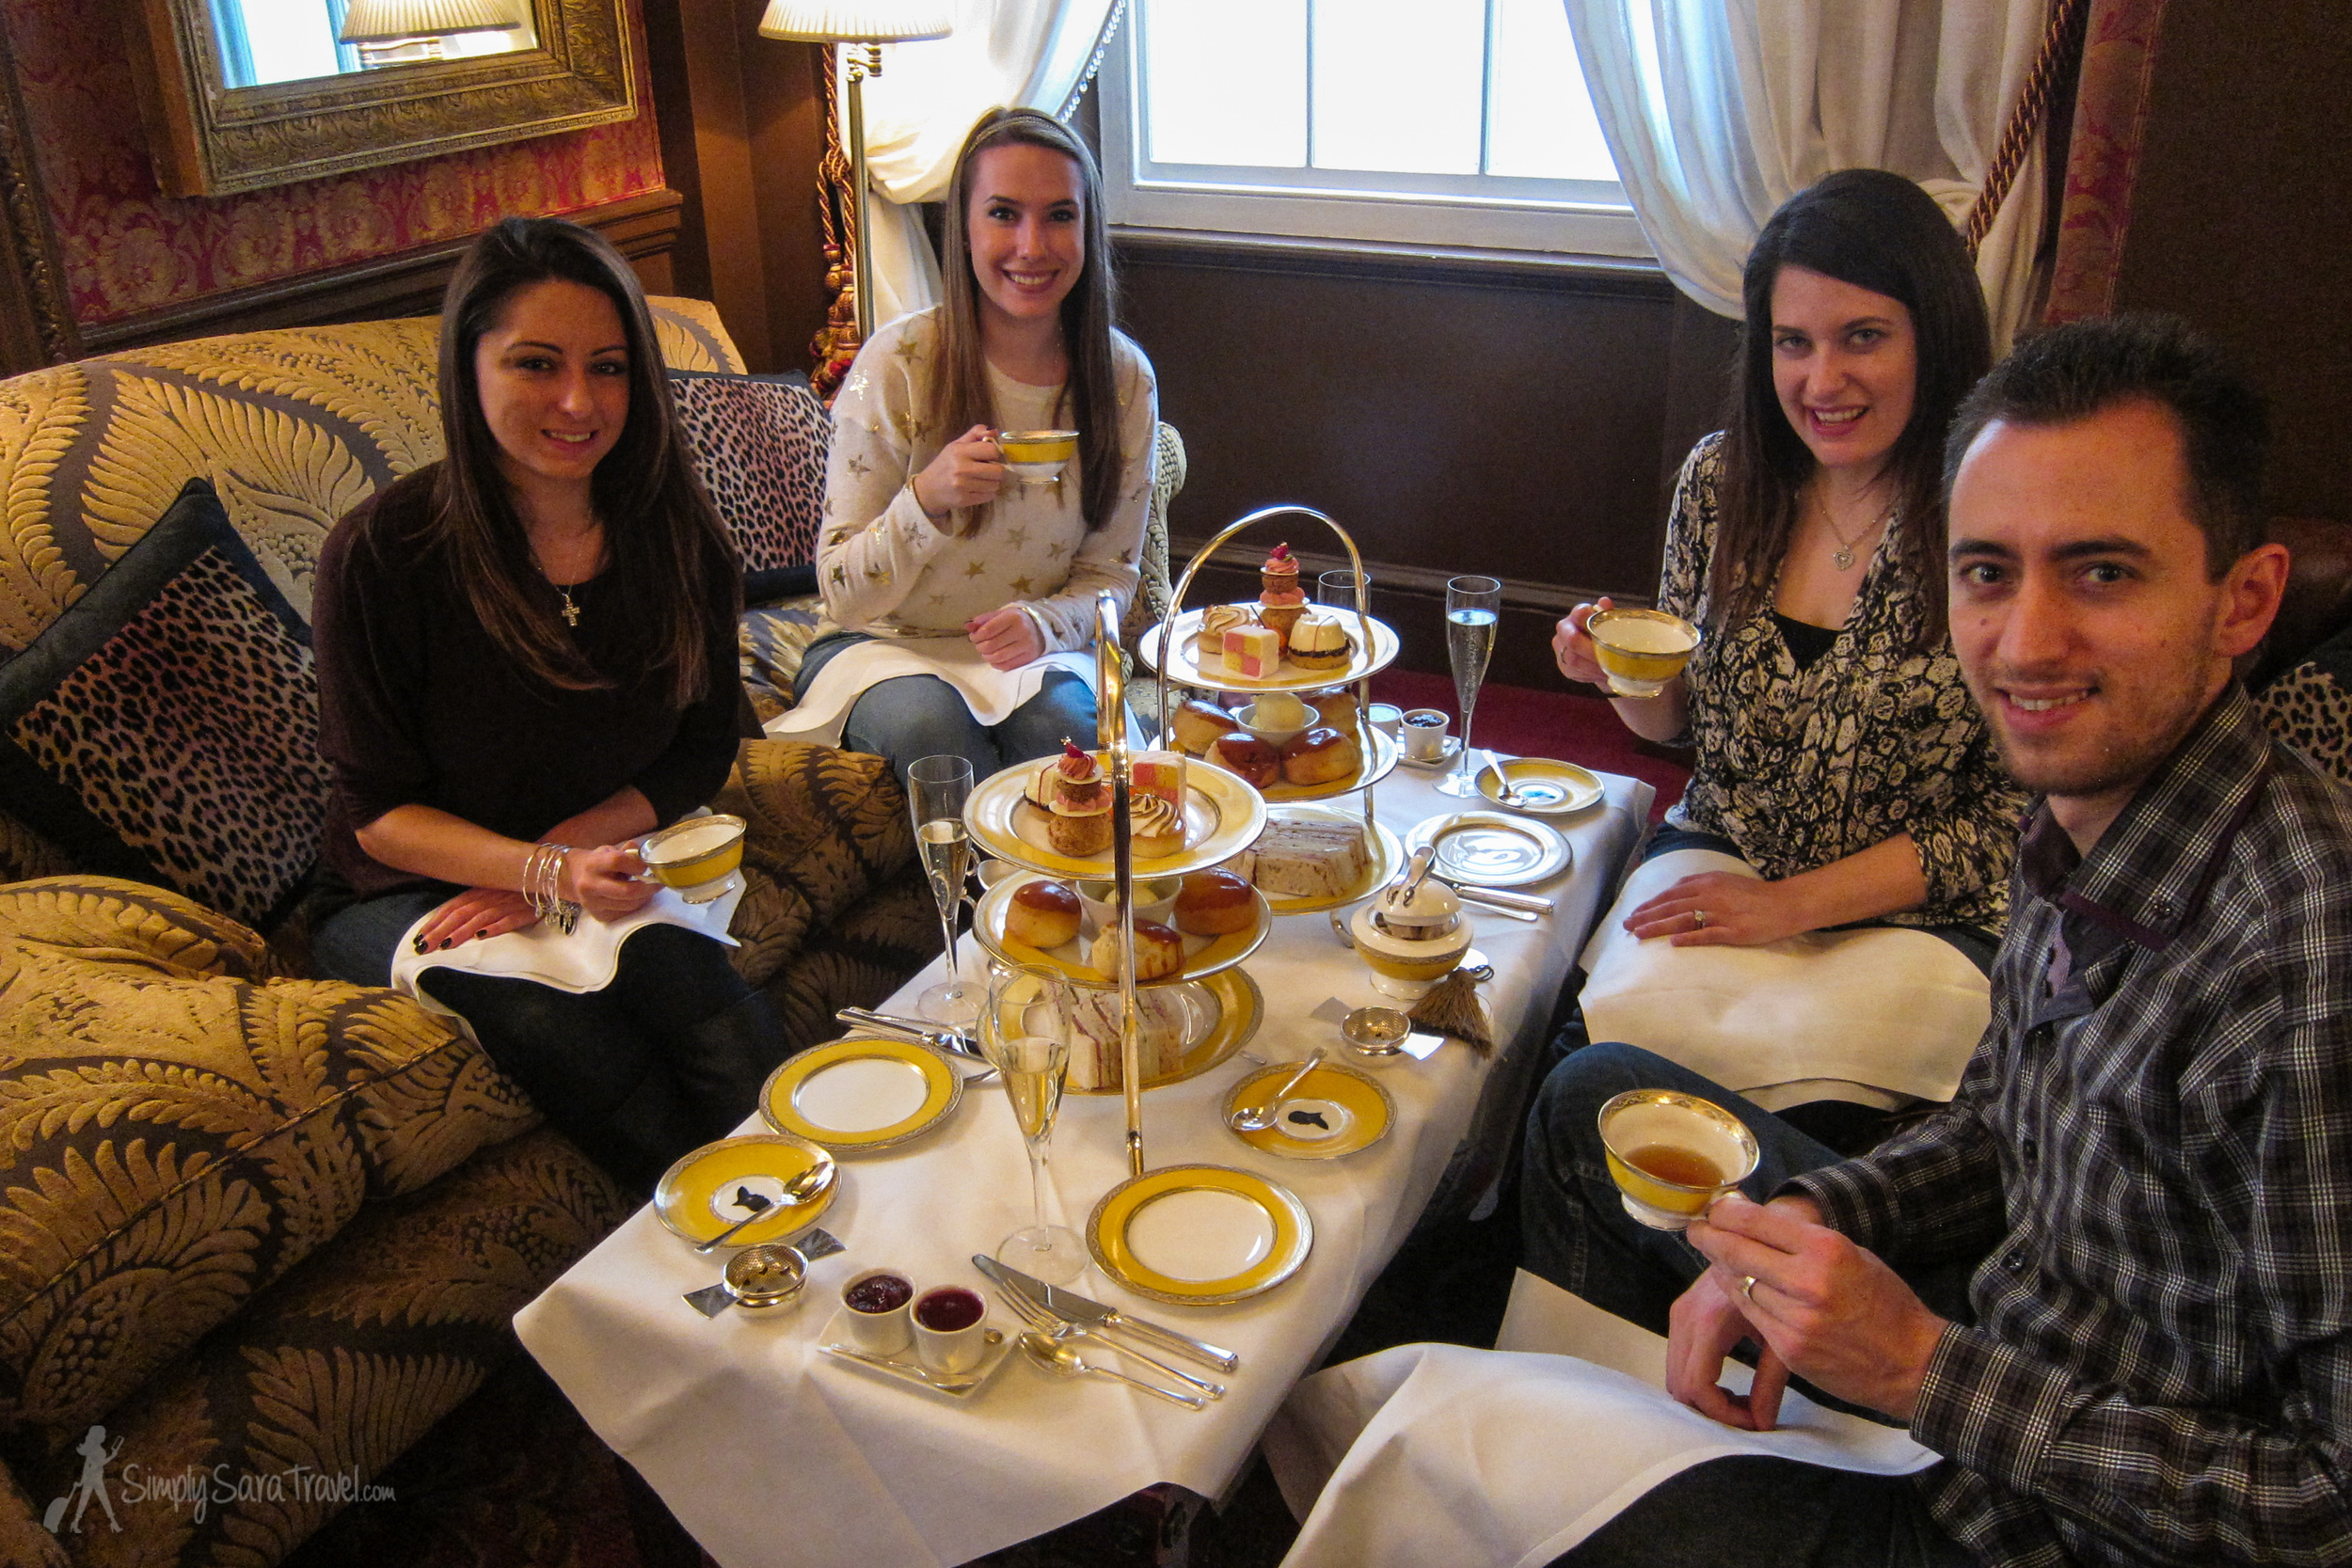 Afternoon tea for a bit of English luxury